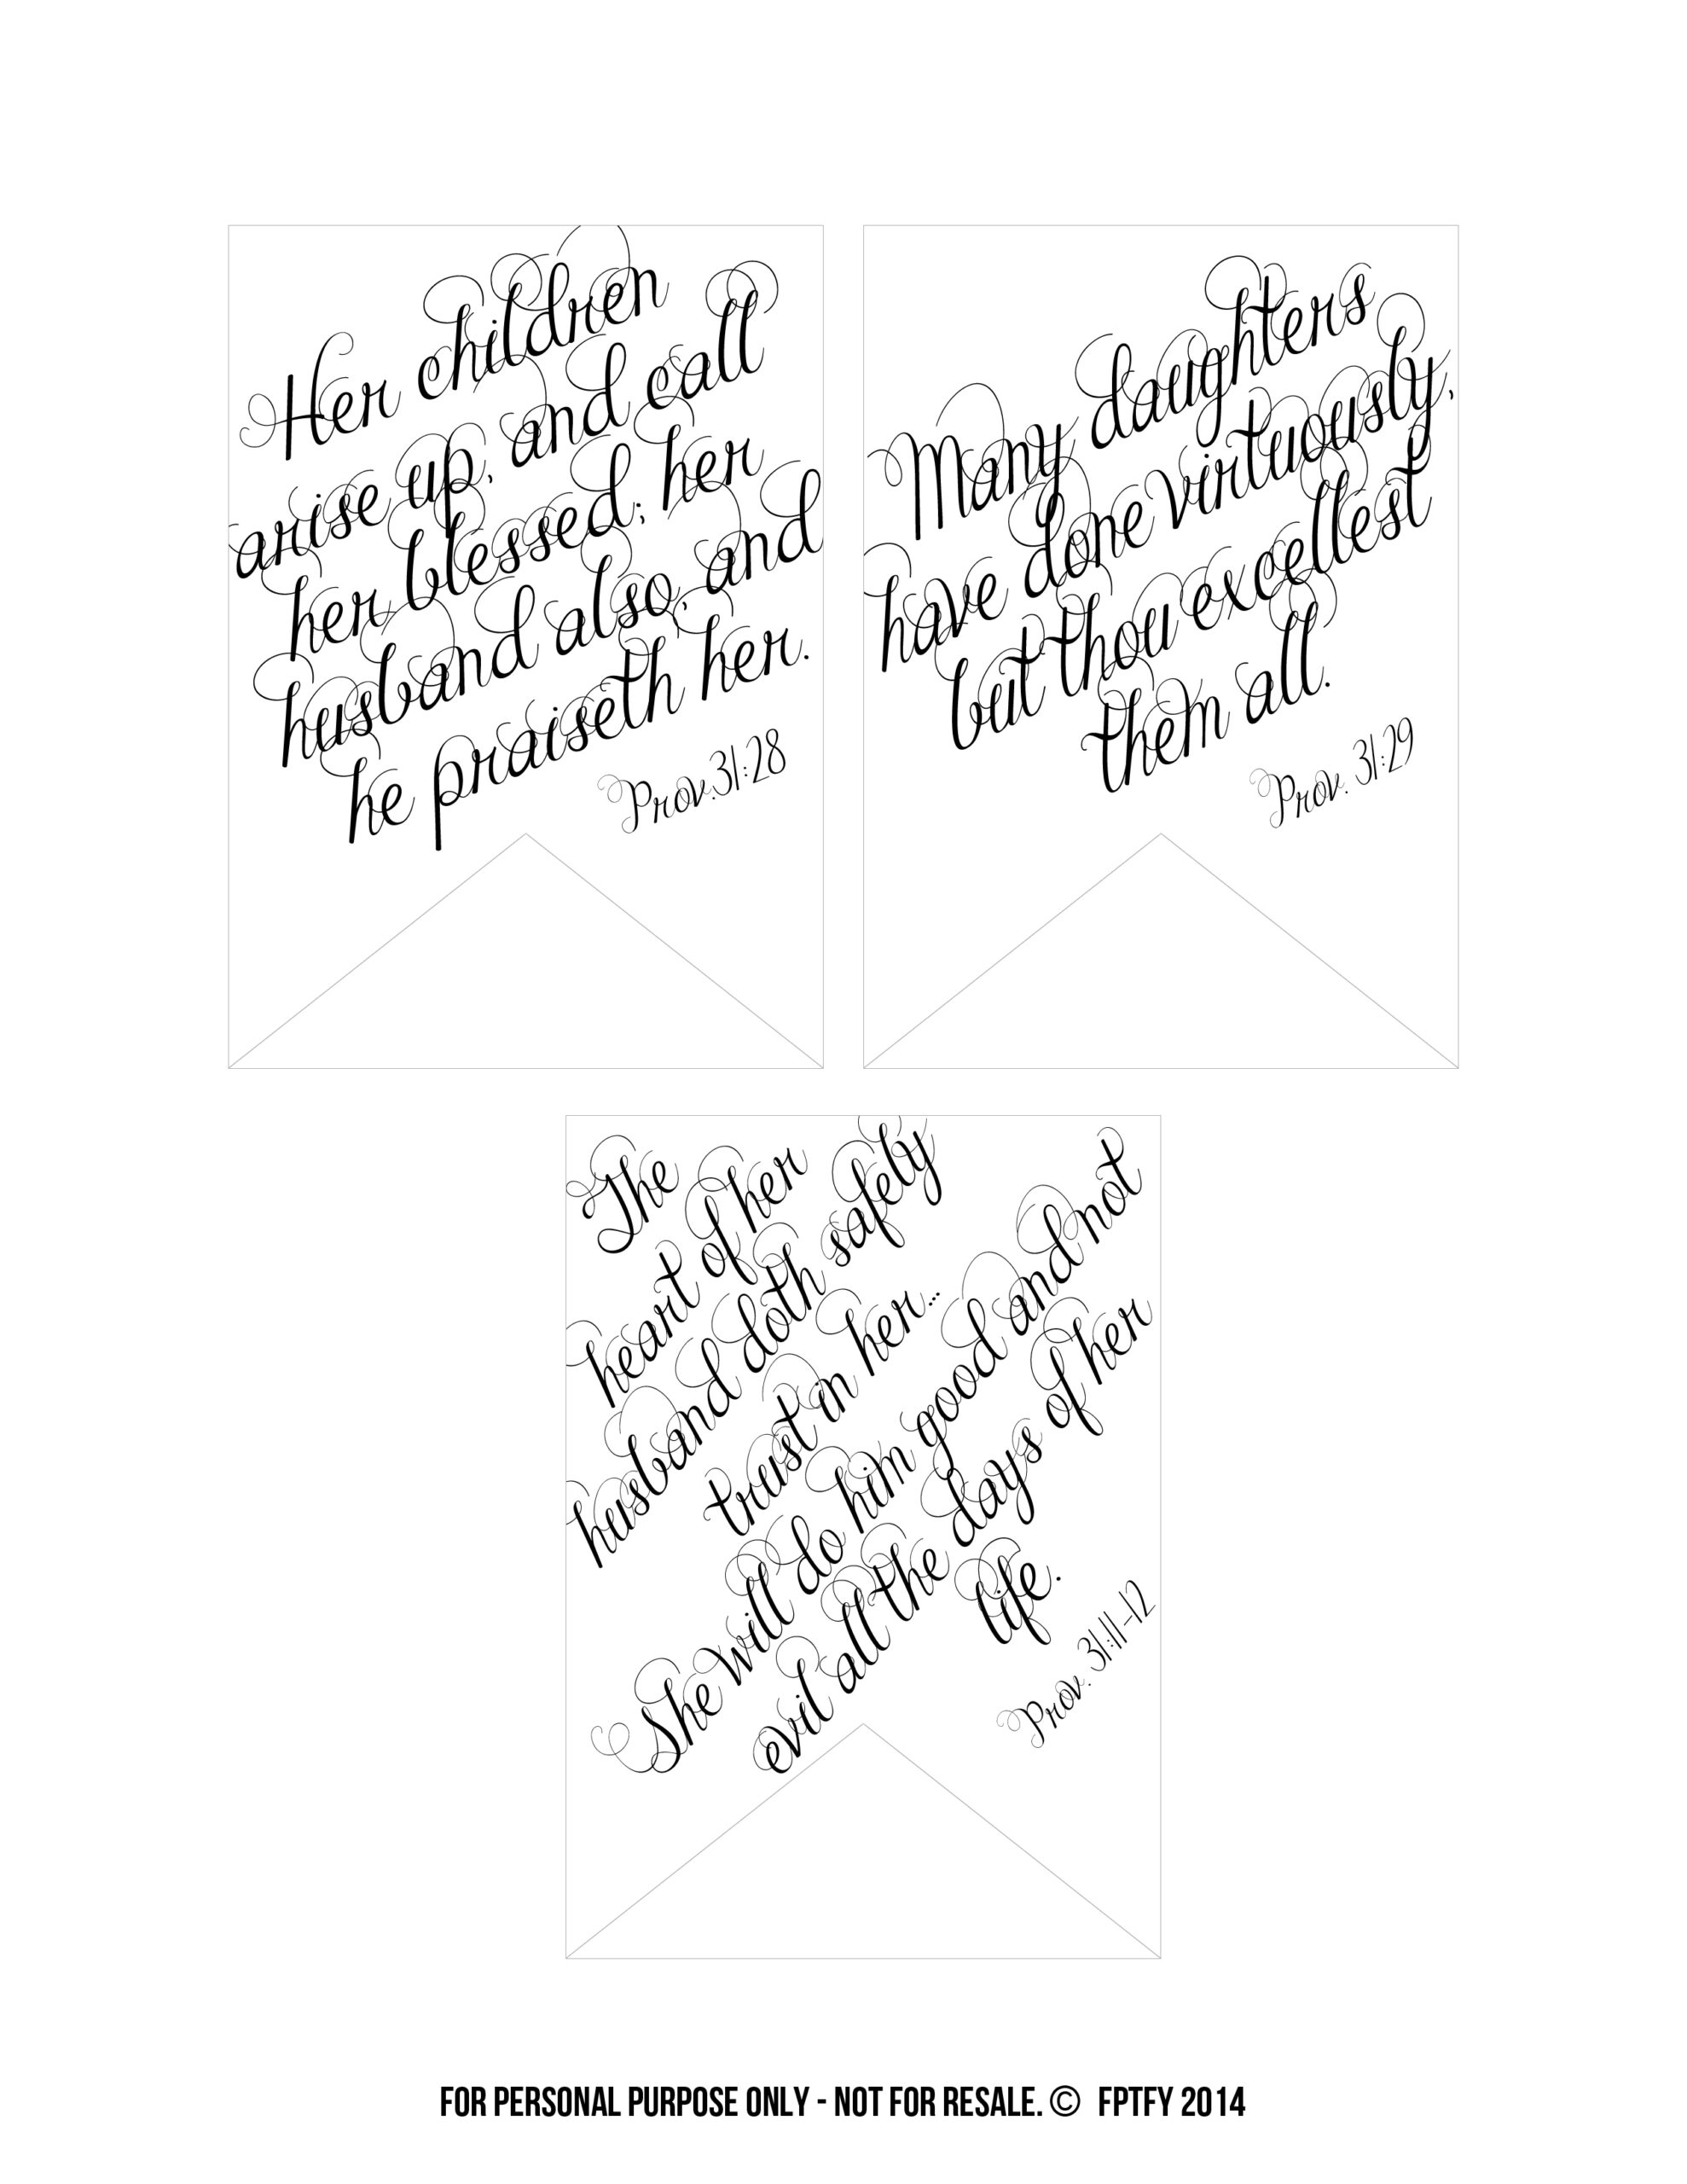 photo about Free Printable Bible Verses Handwriting titled Printable Bible Verses: Proverbs 31 Tags - Absolutely free Extremely